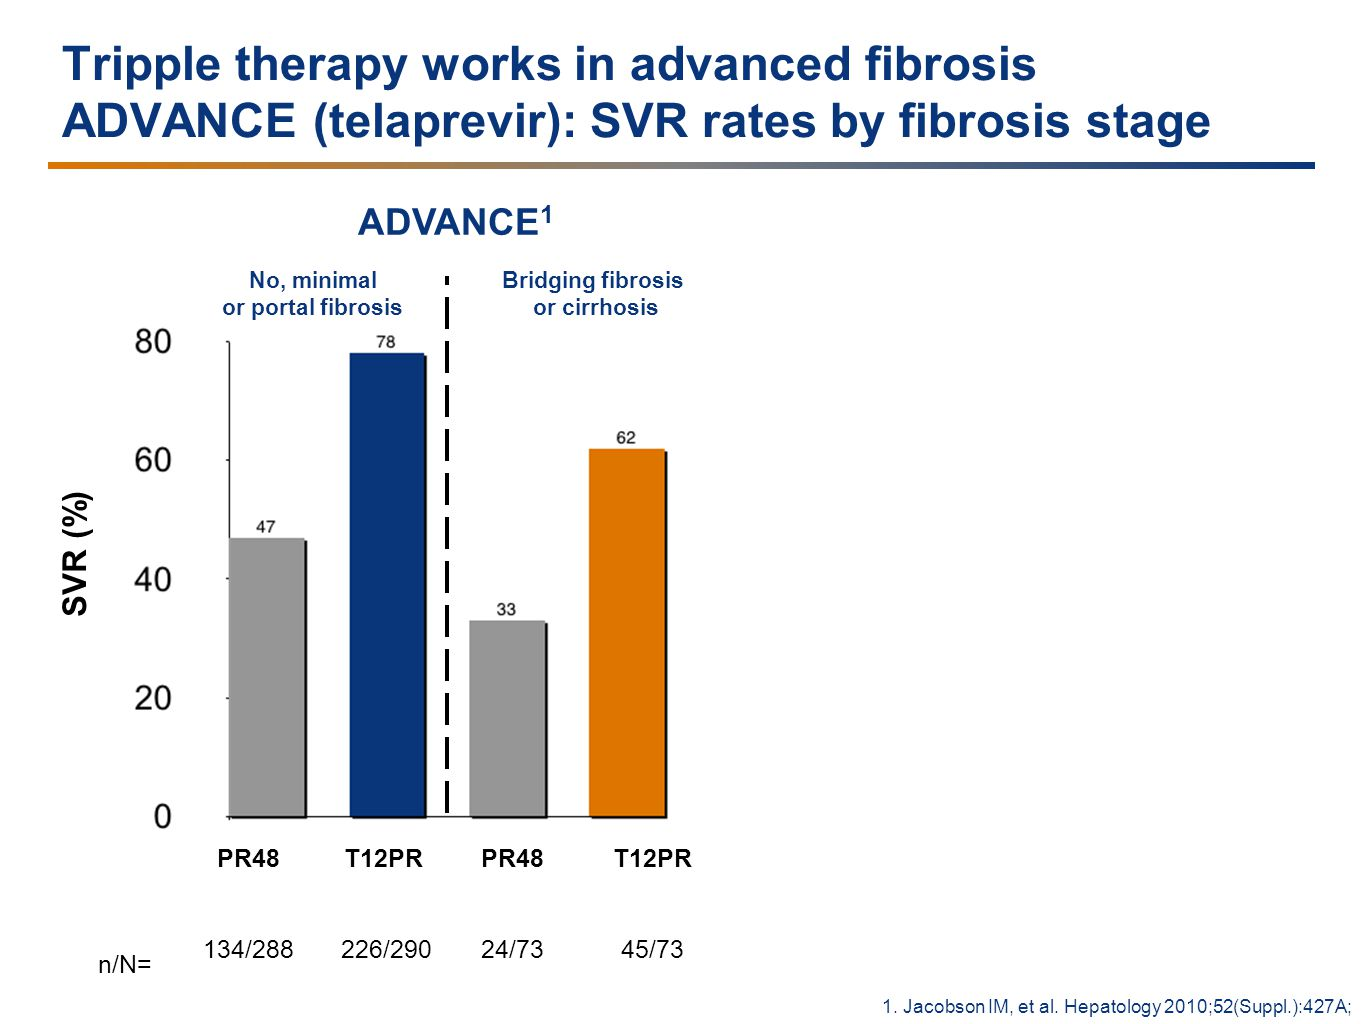 Tripple therapy works in advanced fibrosis ADVANCE (telaprevir): SVR rates by fibrosis stage SVR (%) PR48 134/288 n/N= ADVANCE 1 1.